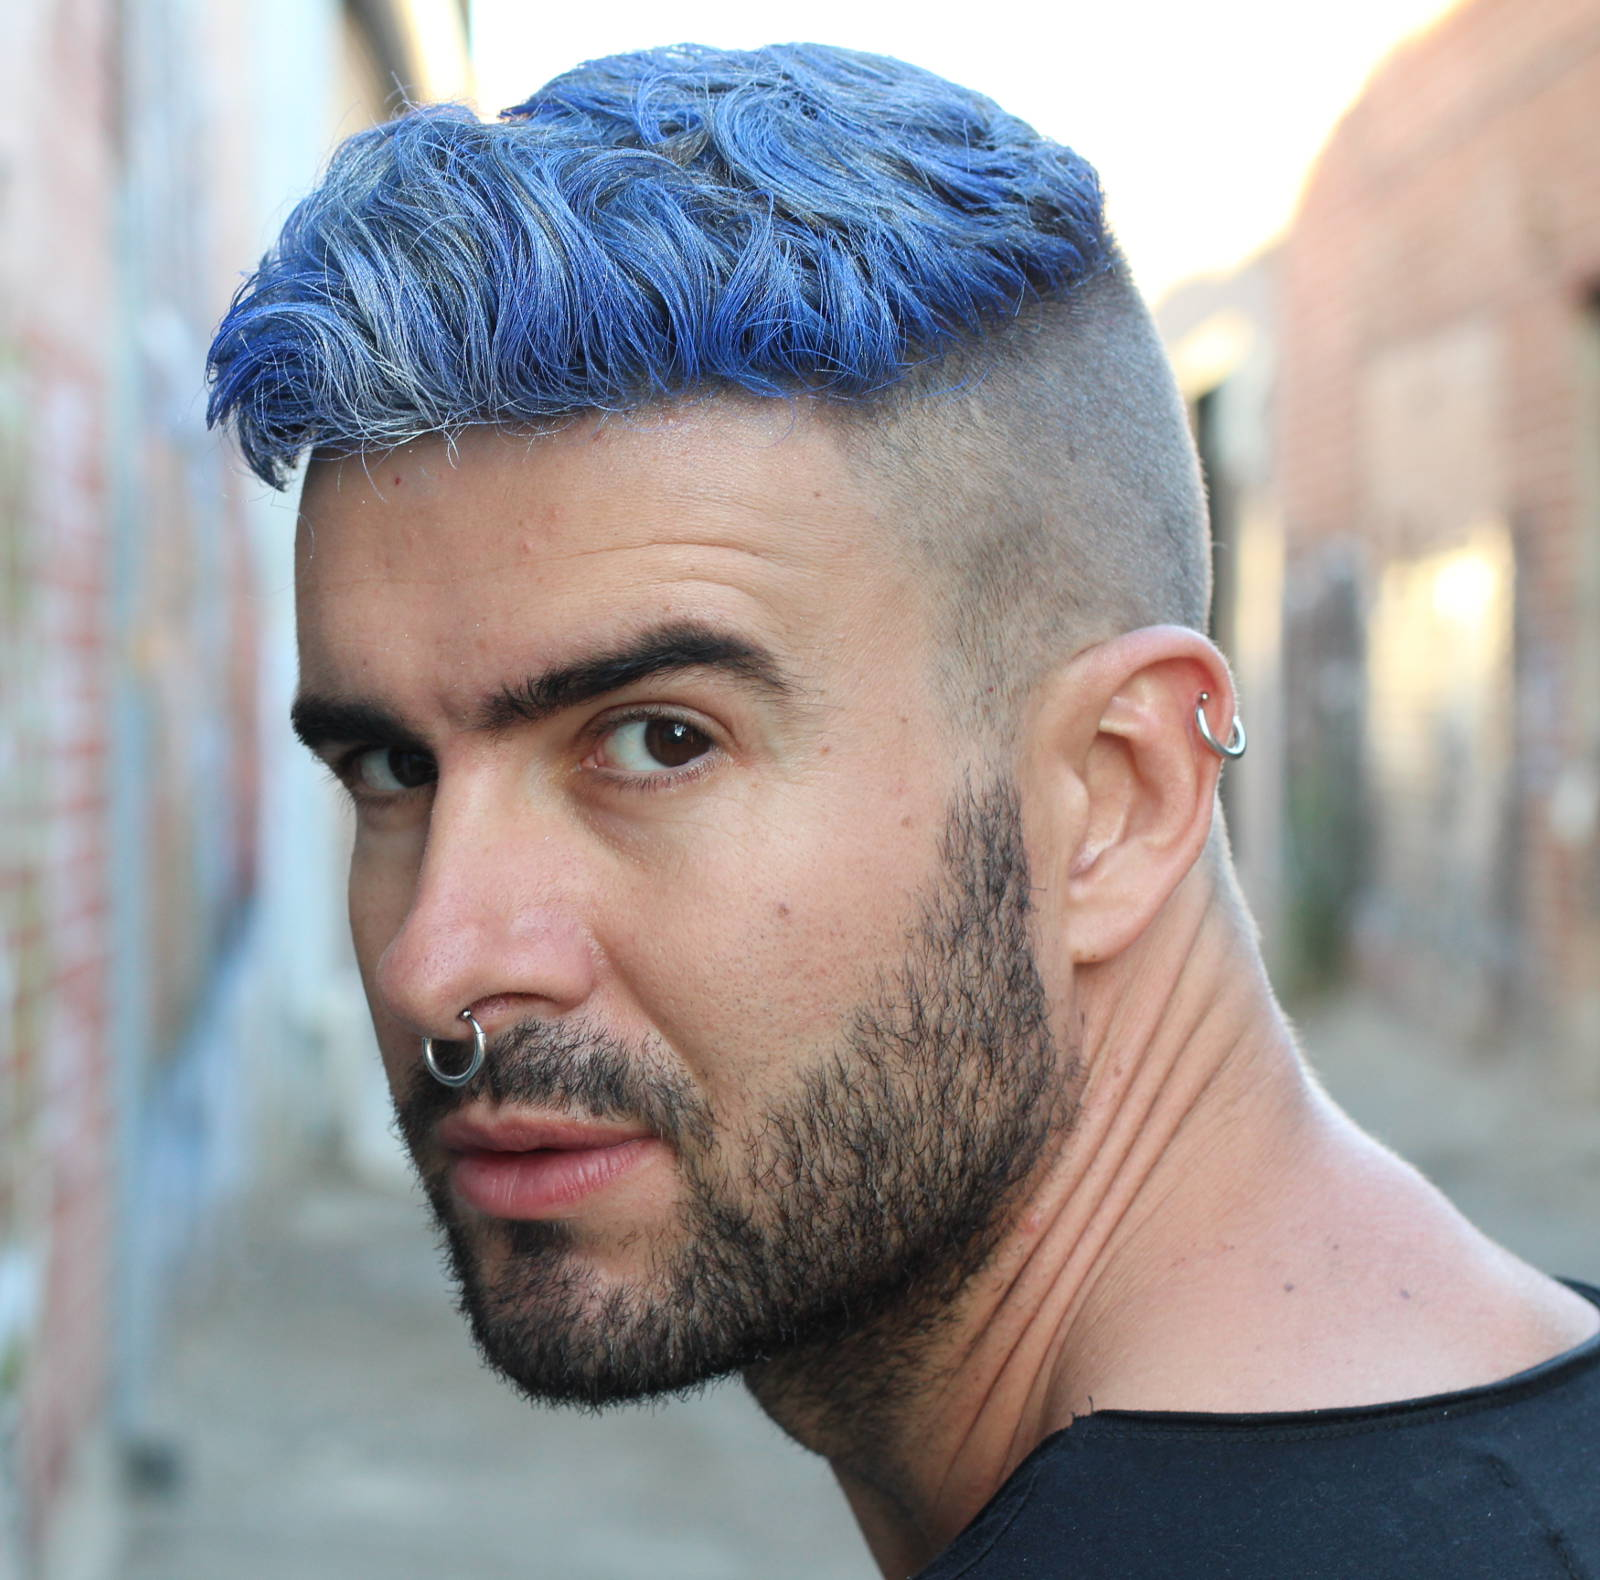 Show Off Your Dyed Hair: 10 Colorful Men's Hairstyles